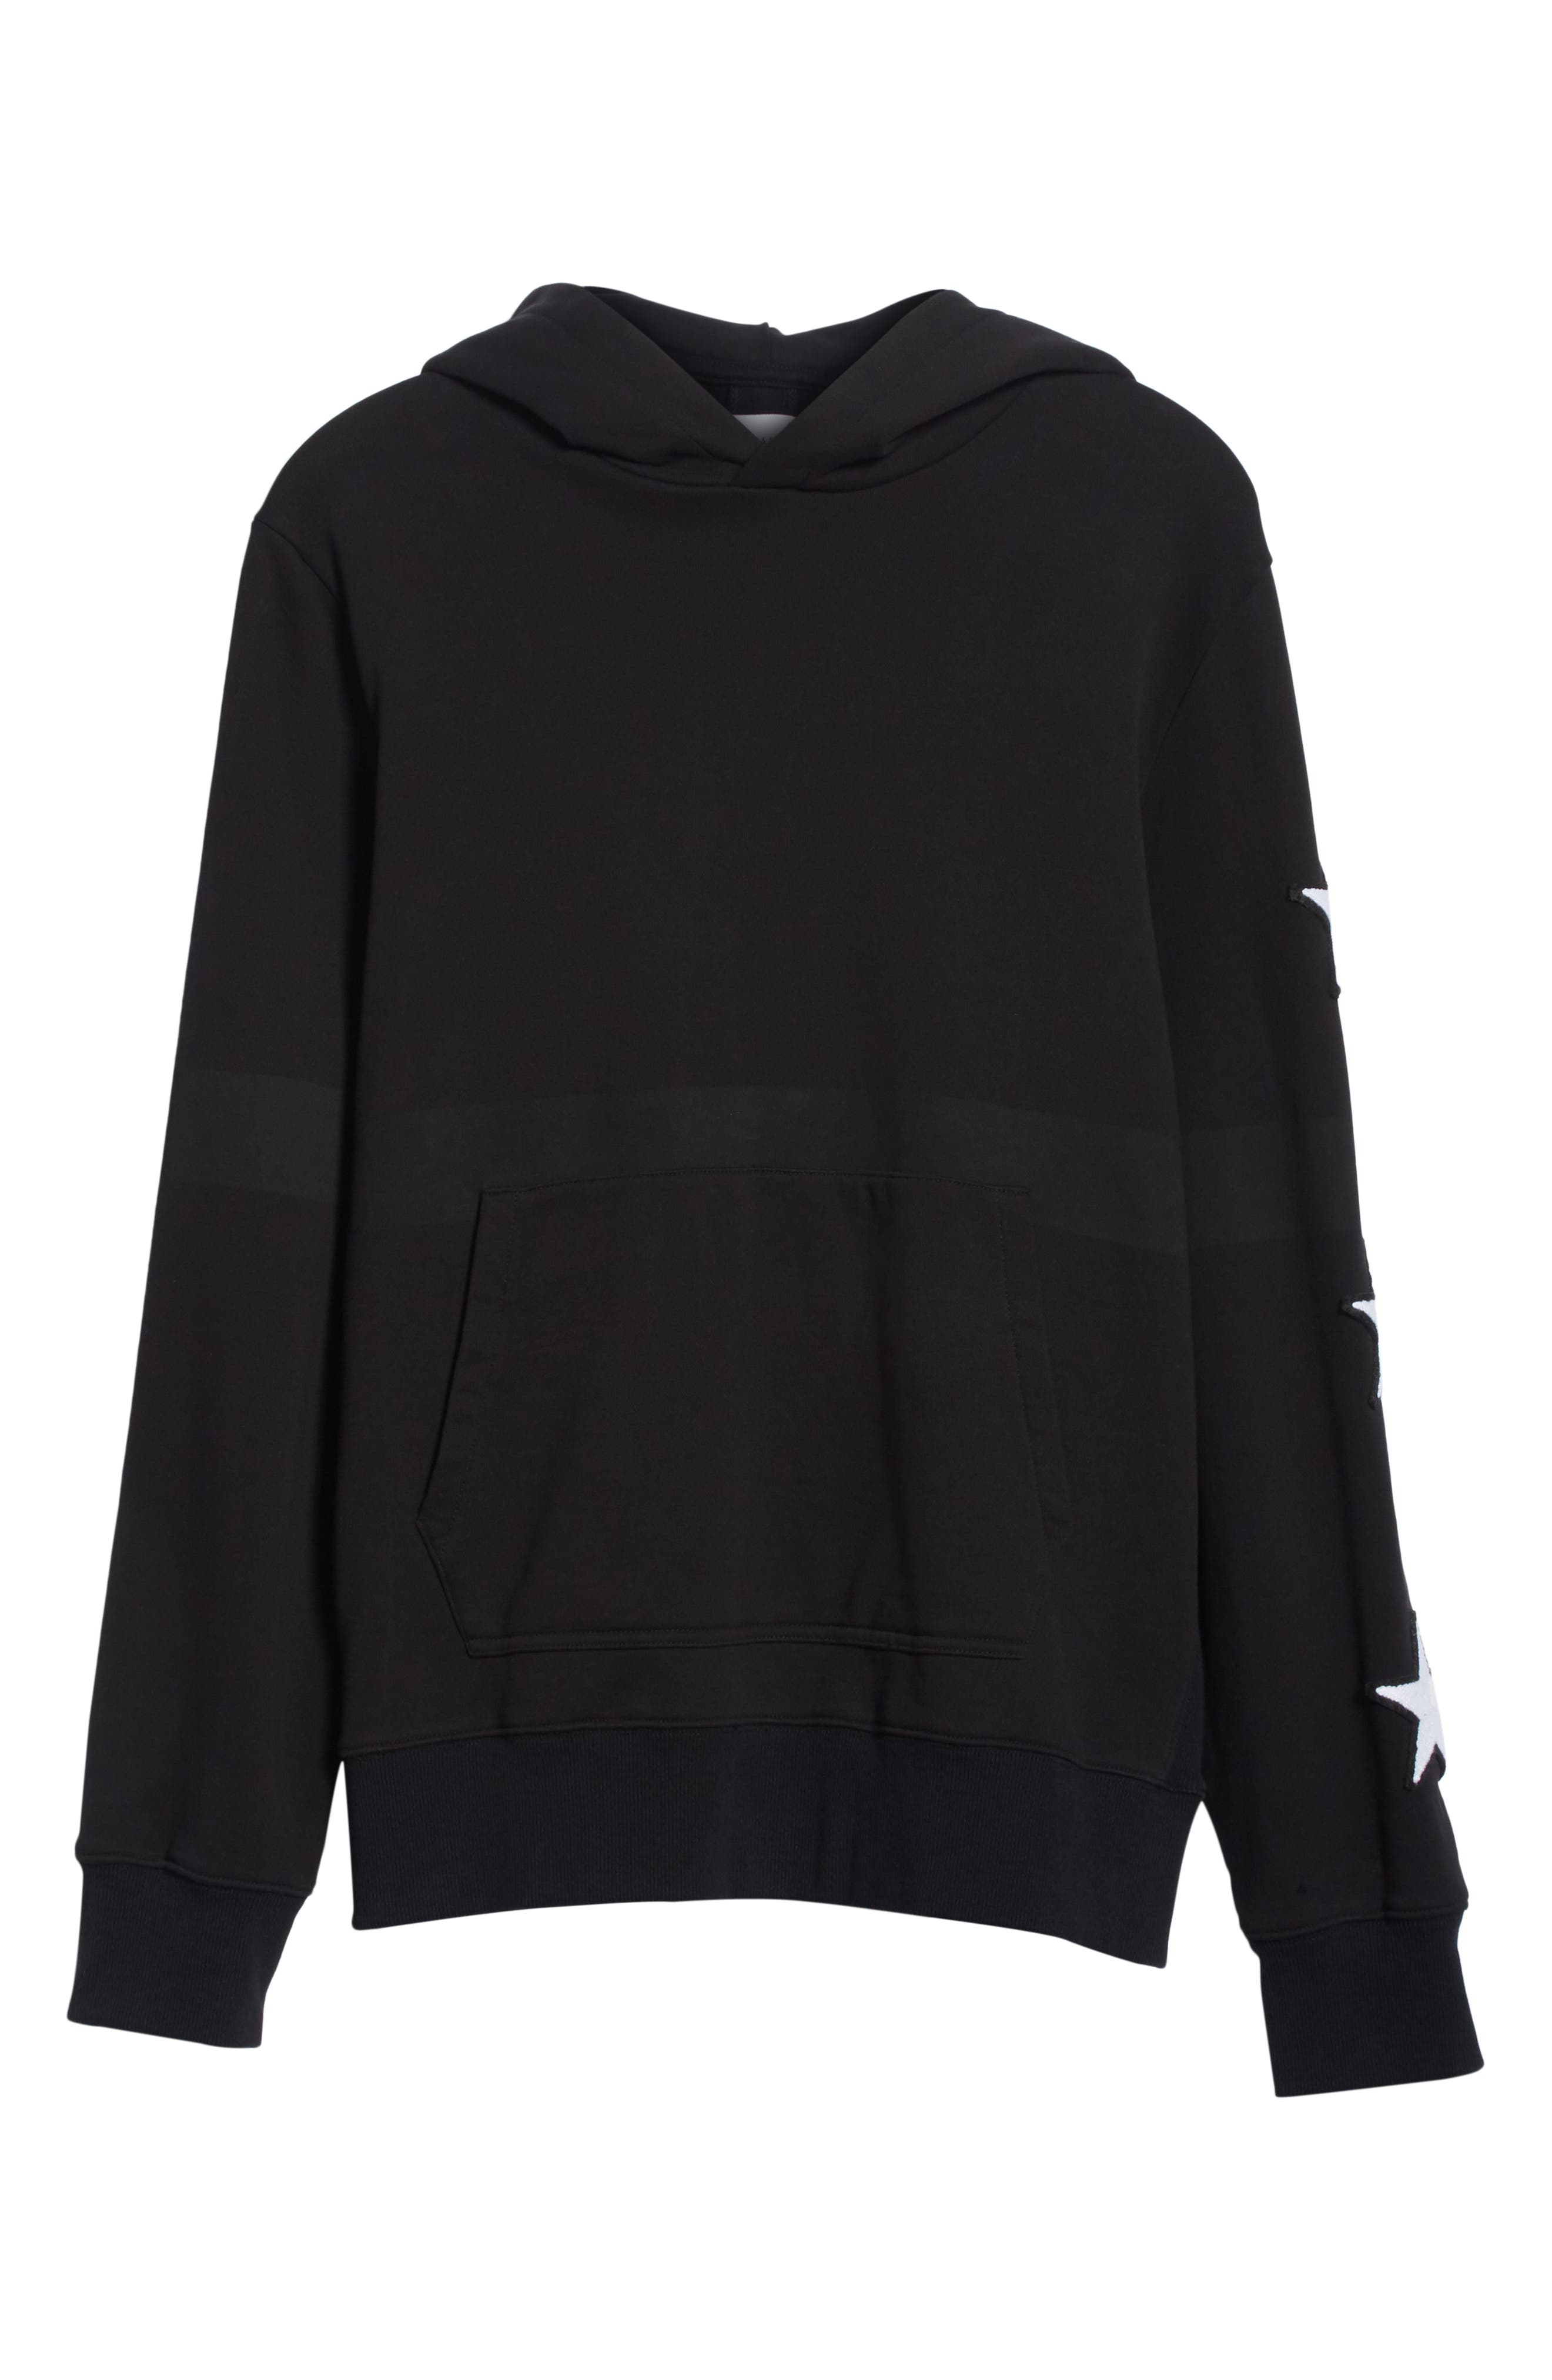 Star Patch Hoodie,                             Alternate thumbnail 6, color,                             001